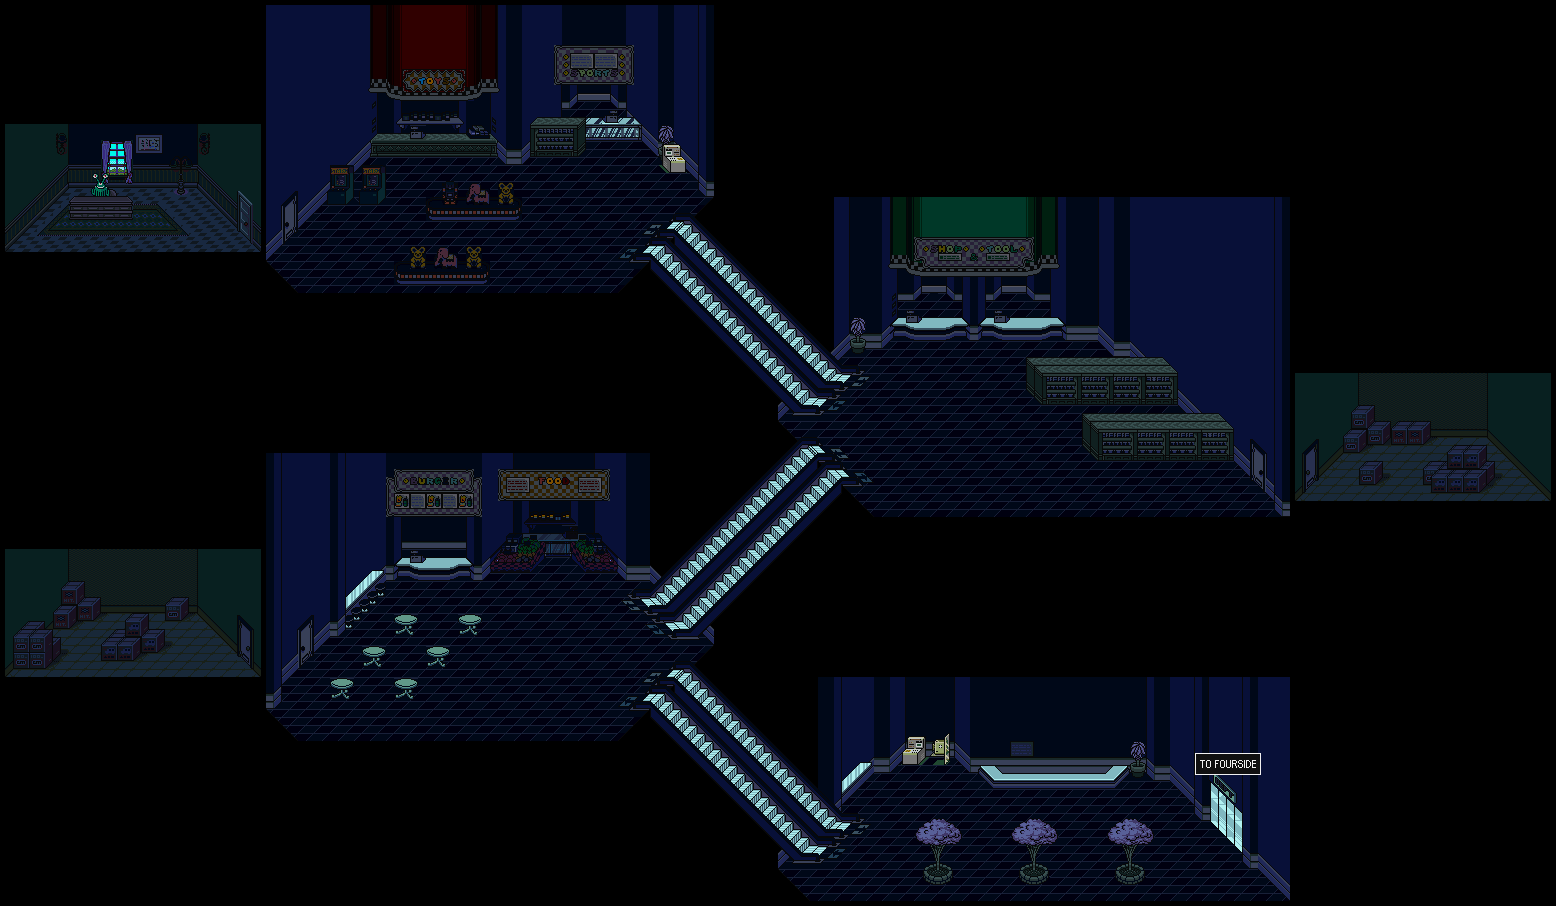 Starmen Net Mother 2 Earthbound Maps